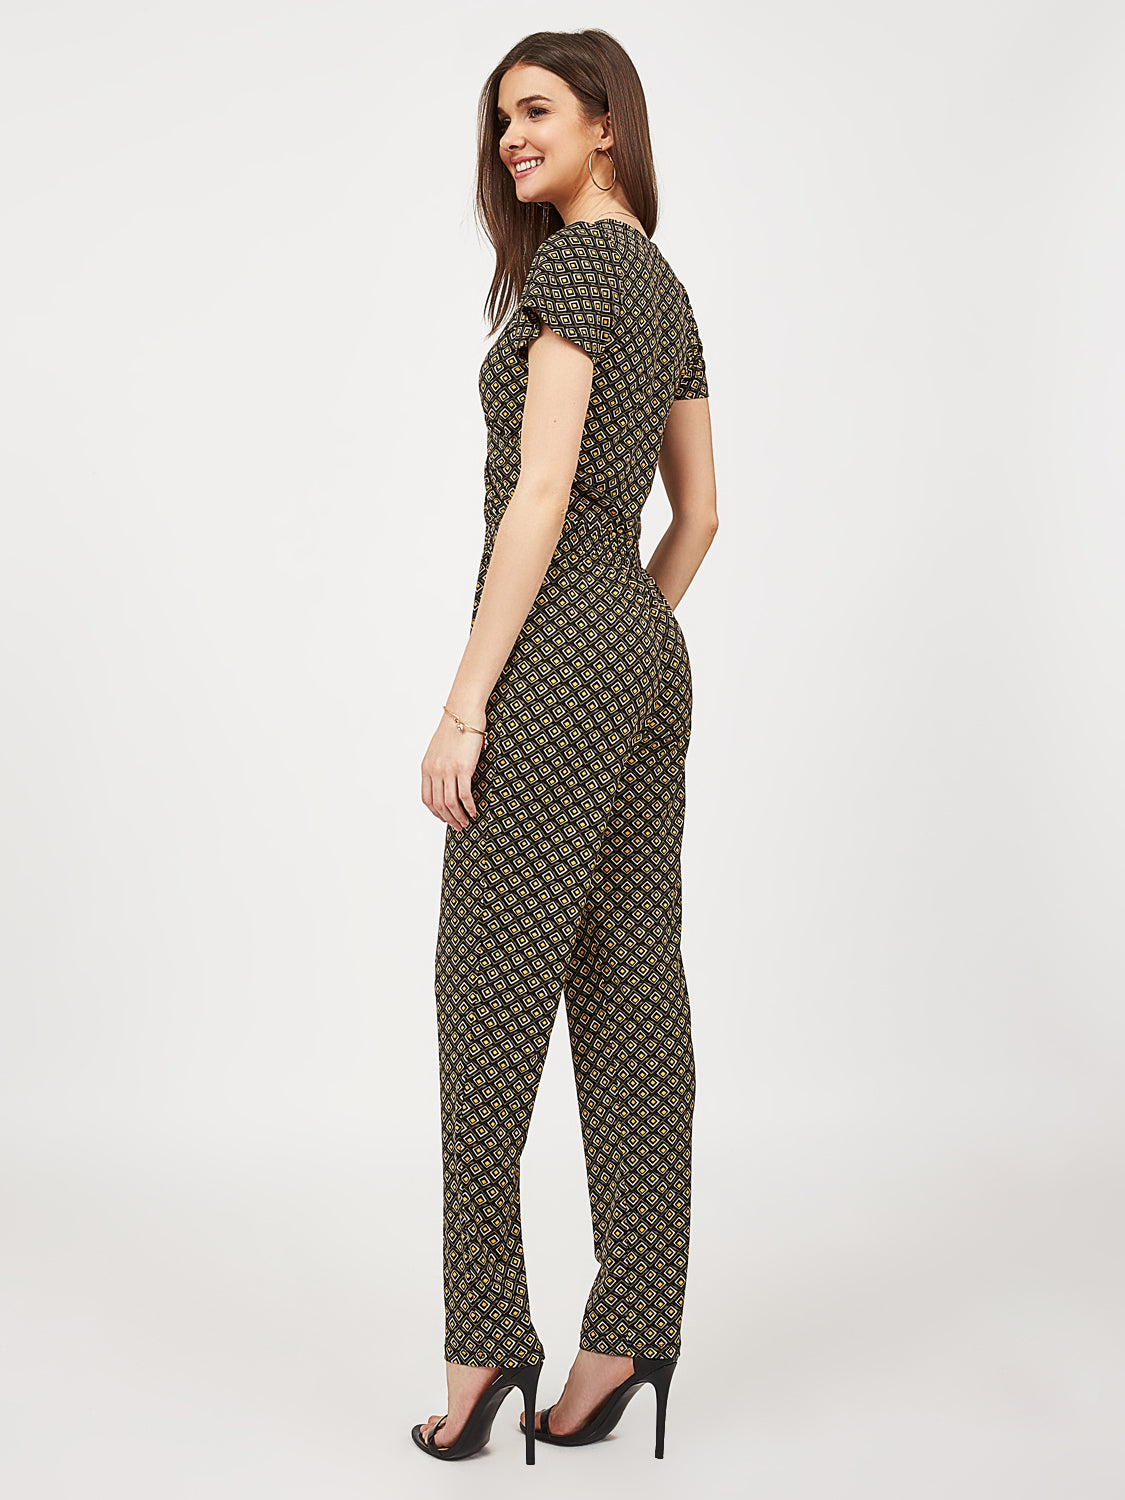 Crossover Crepe Knit Jumpsuit